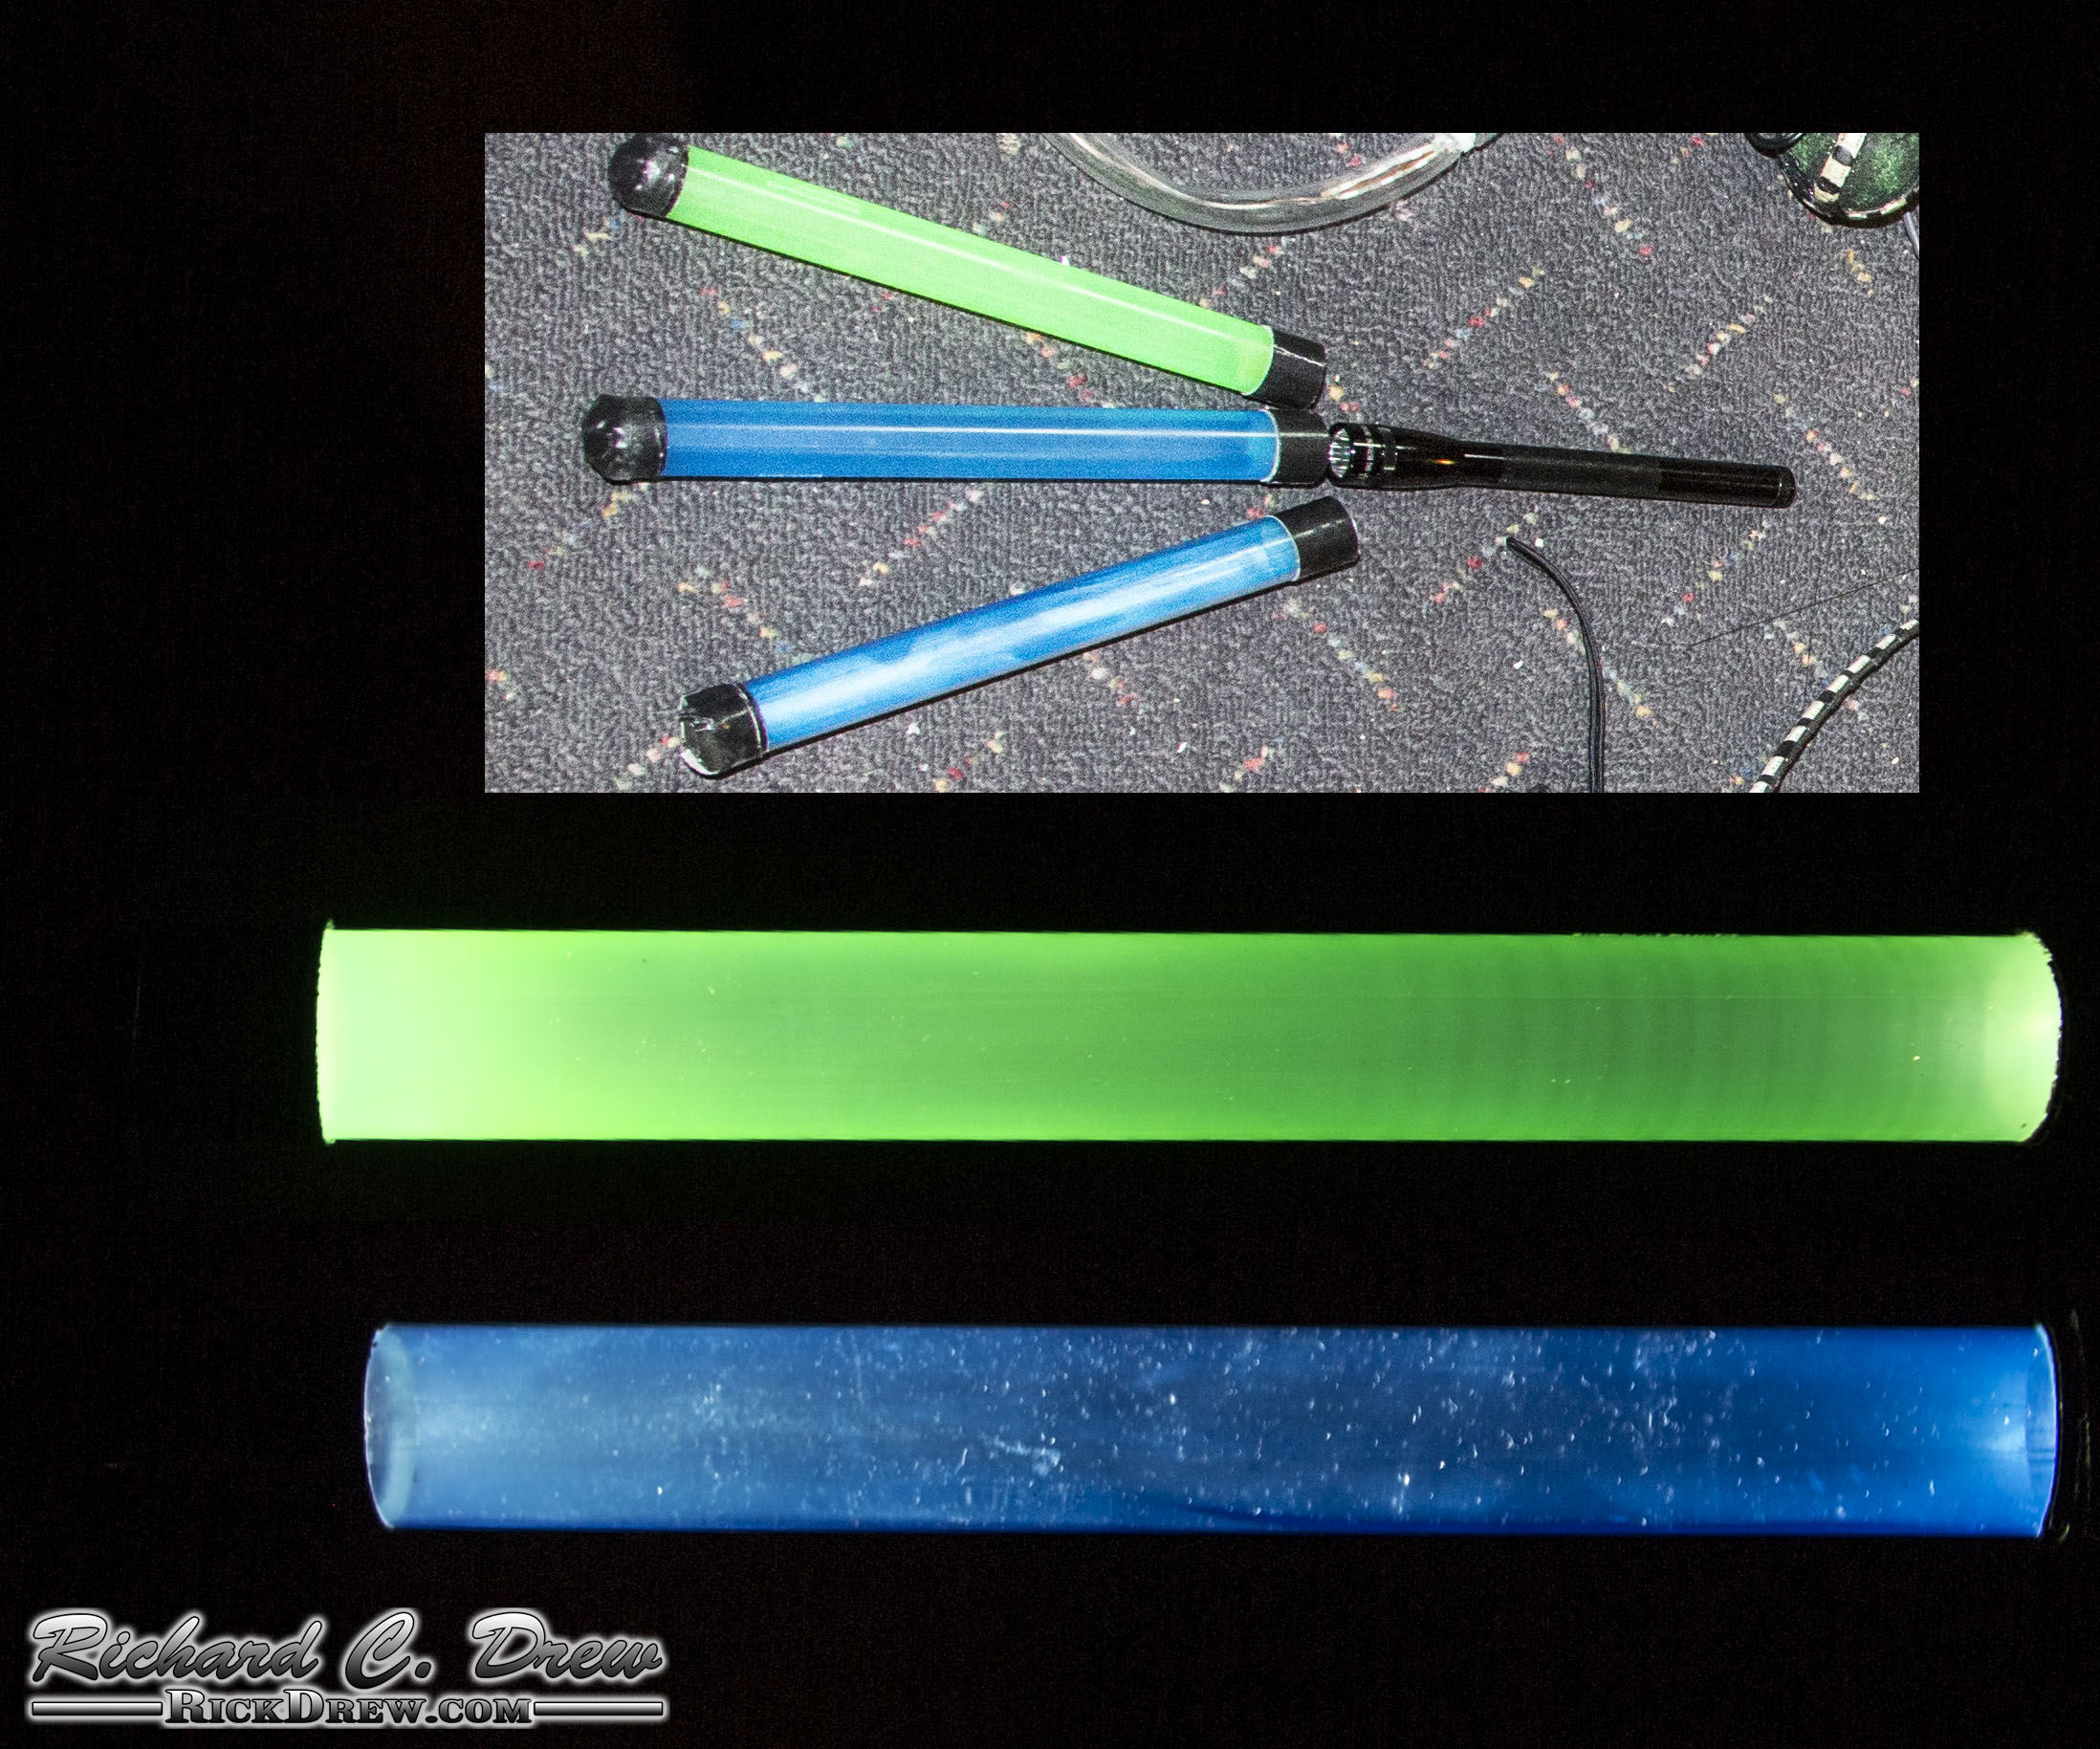 Super Simple $1 Light-Painting Wand